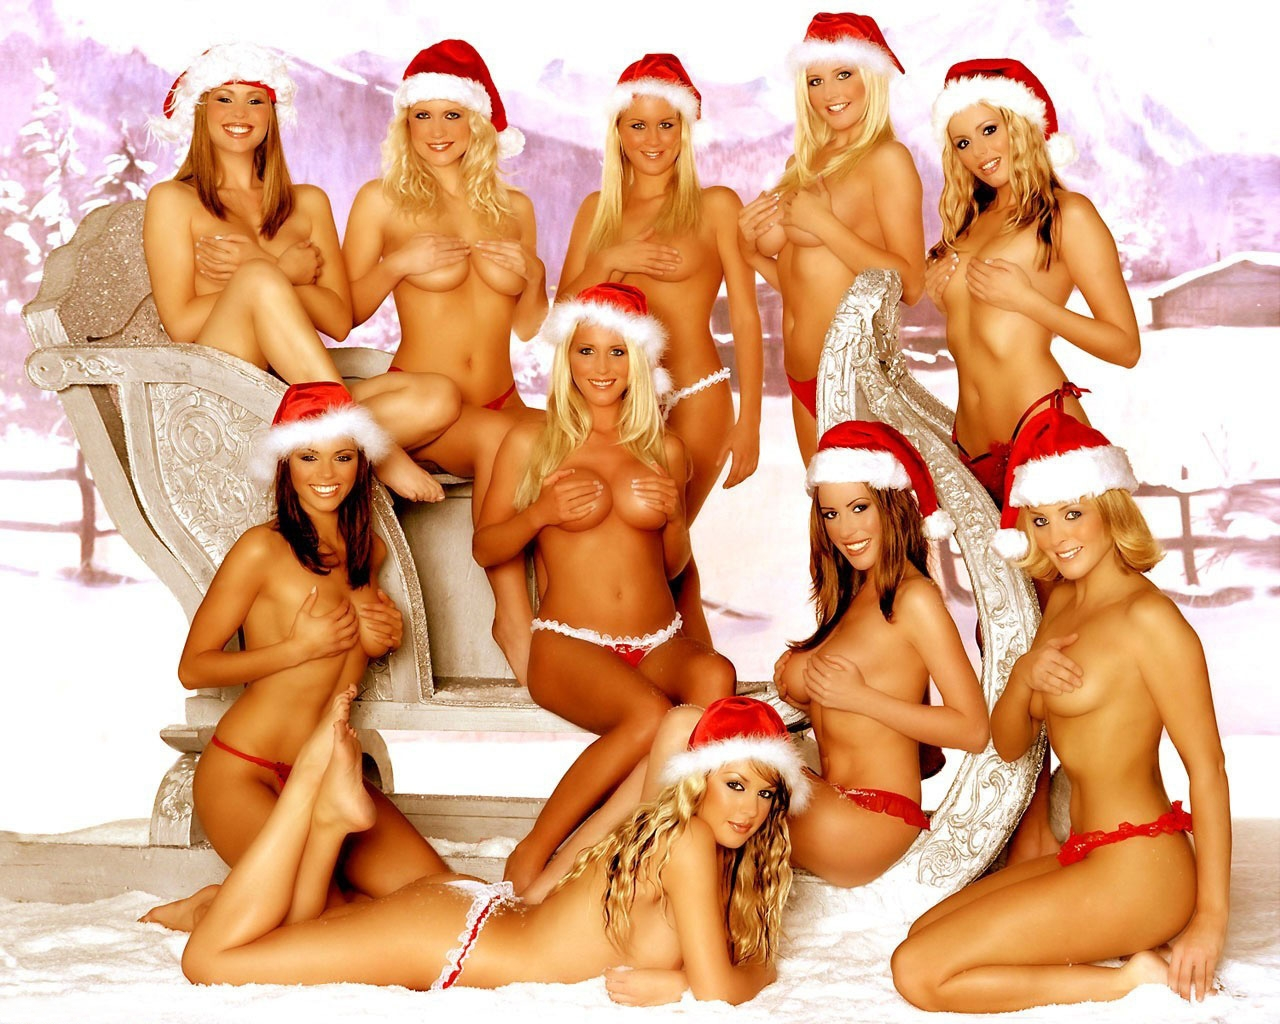 Christmas costume nude girls 3gp porn videos fucking picture